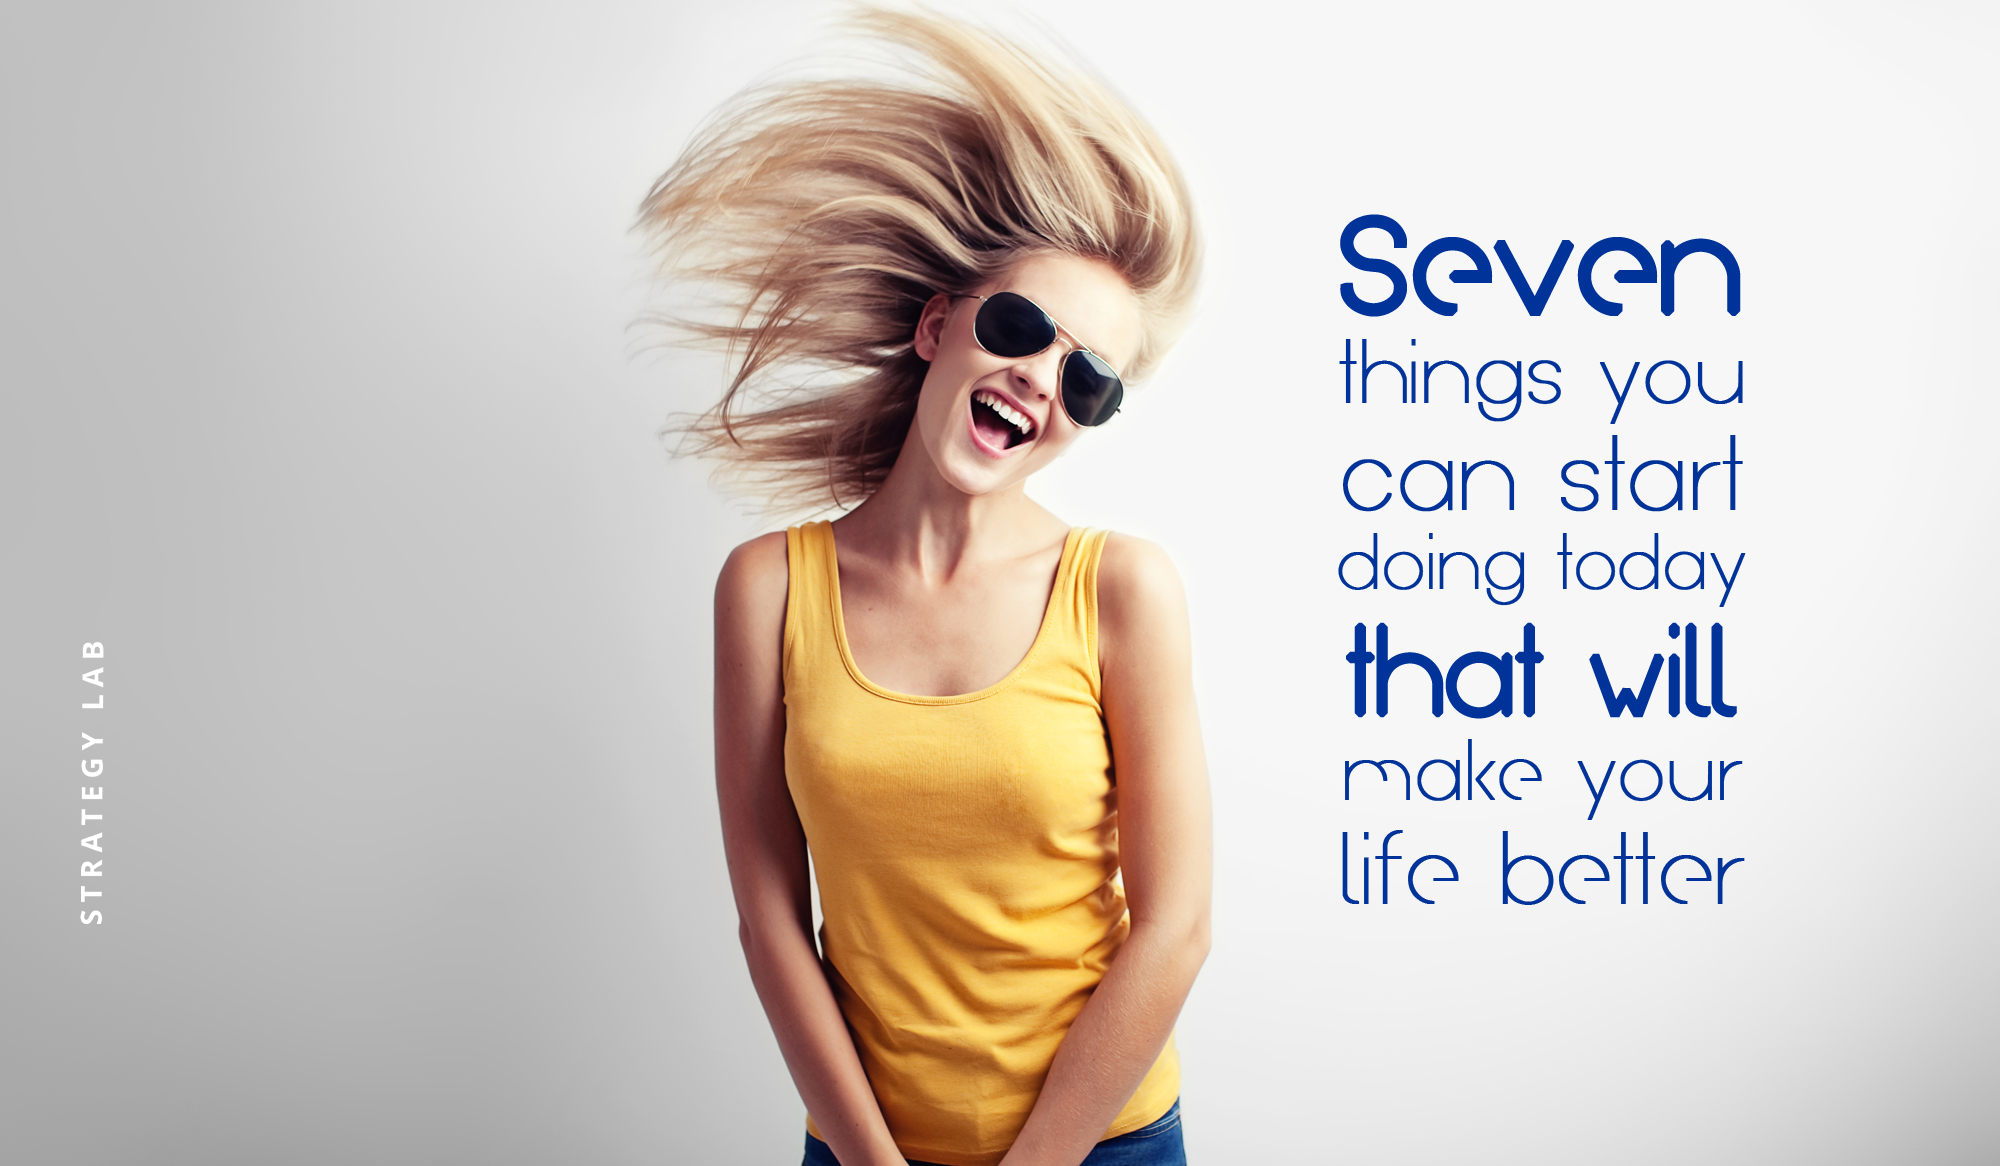 7-things-you-can-do-today-that-will-make-your-life-better